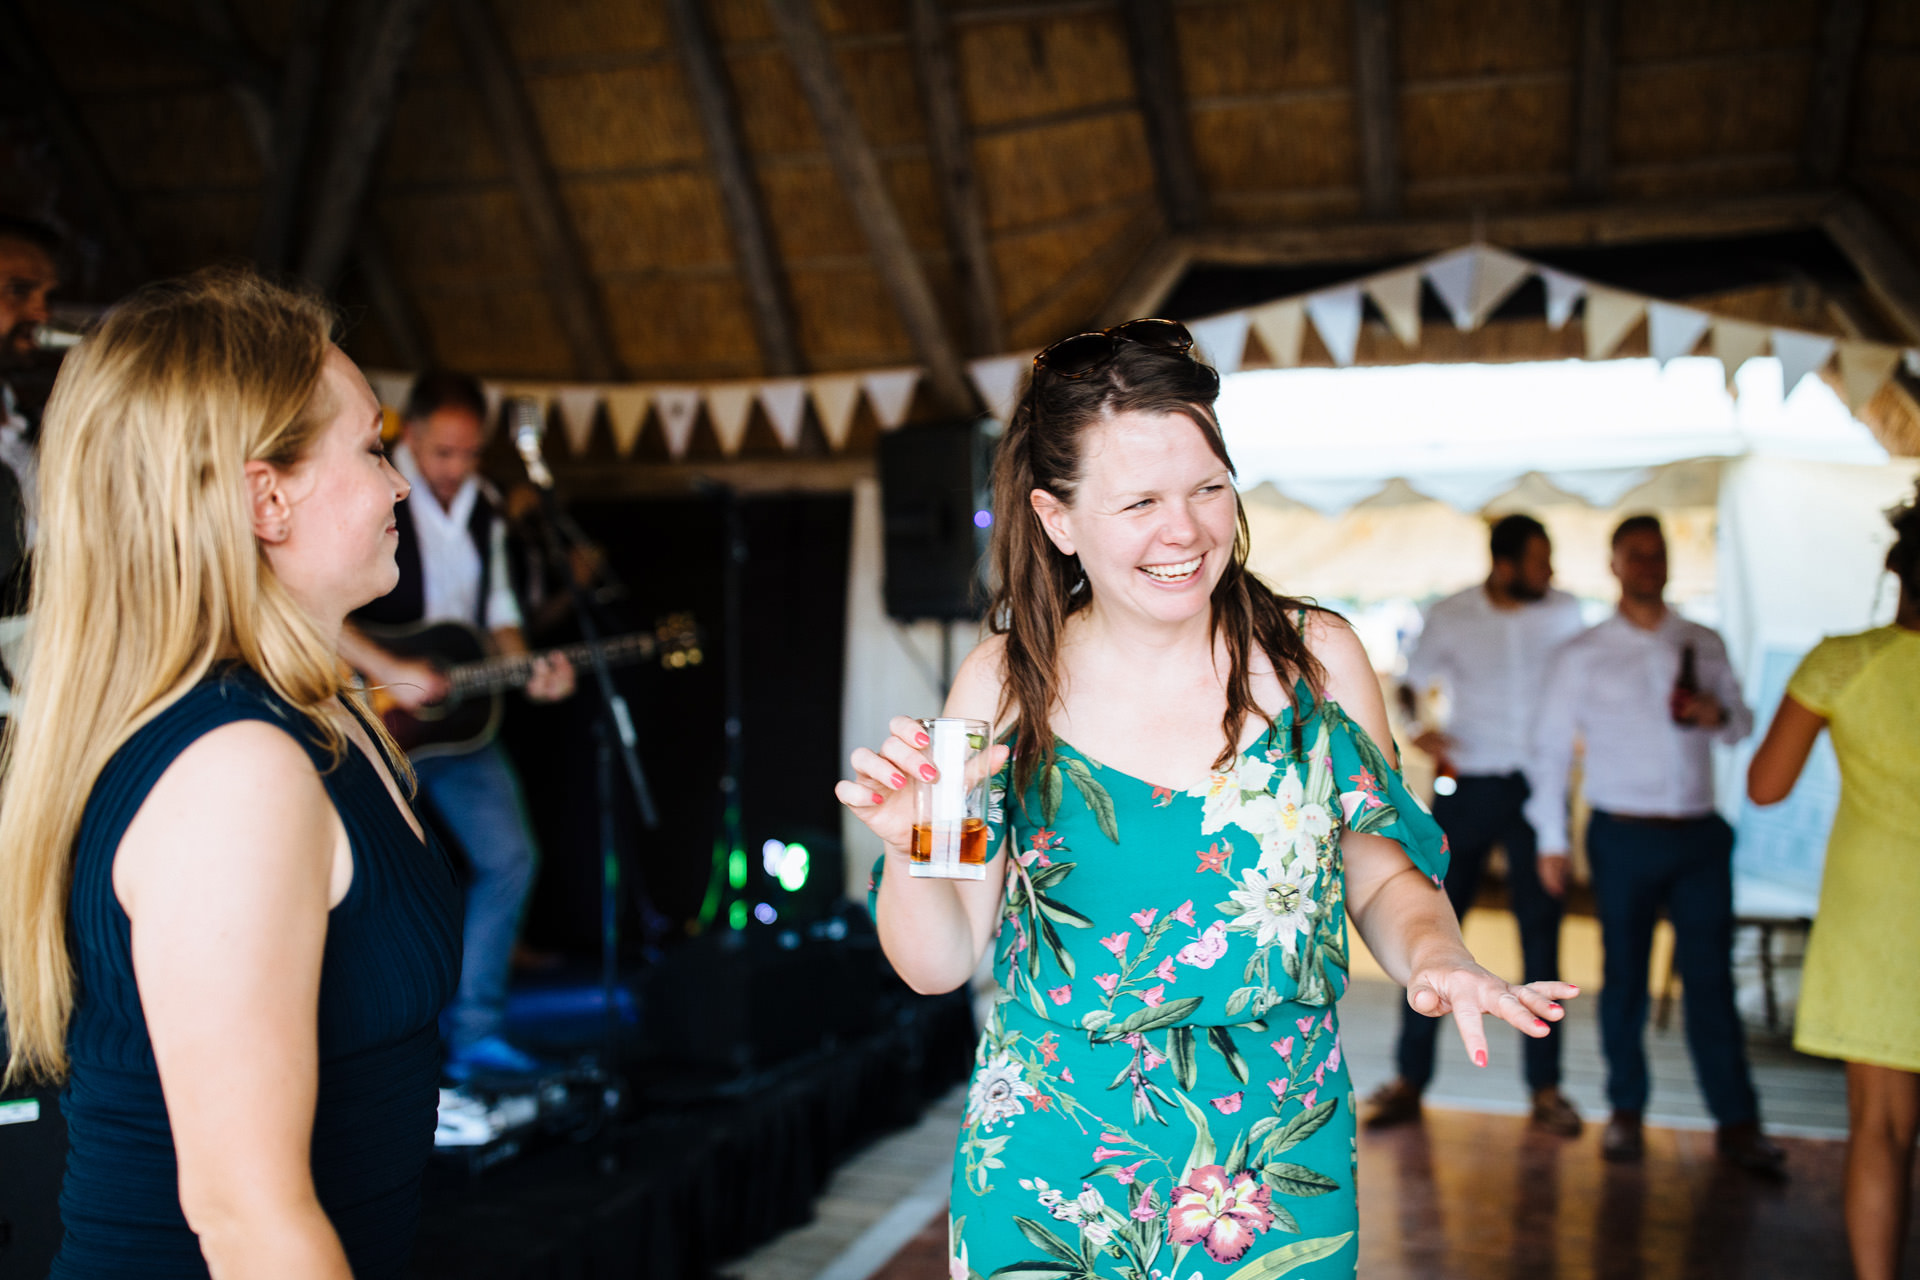 lady in green floral dress with drink in hand dancing